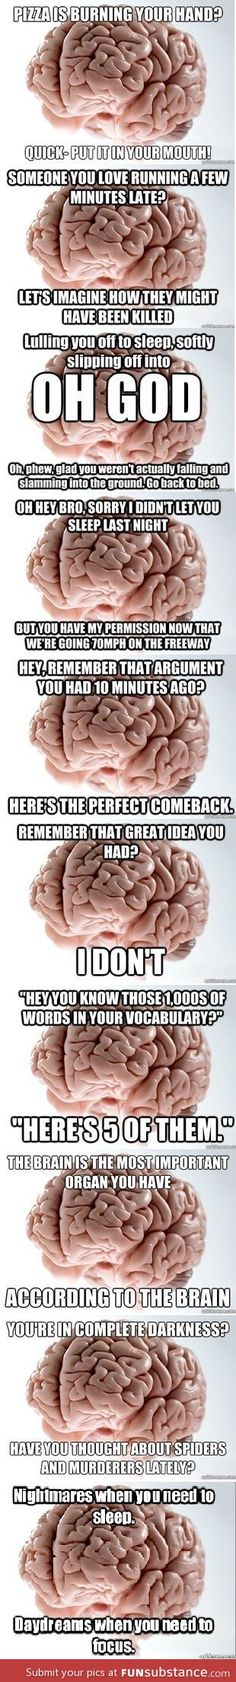 My brain goes through all of these... usually on a daily basis